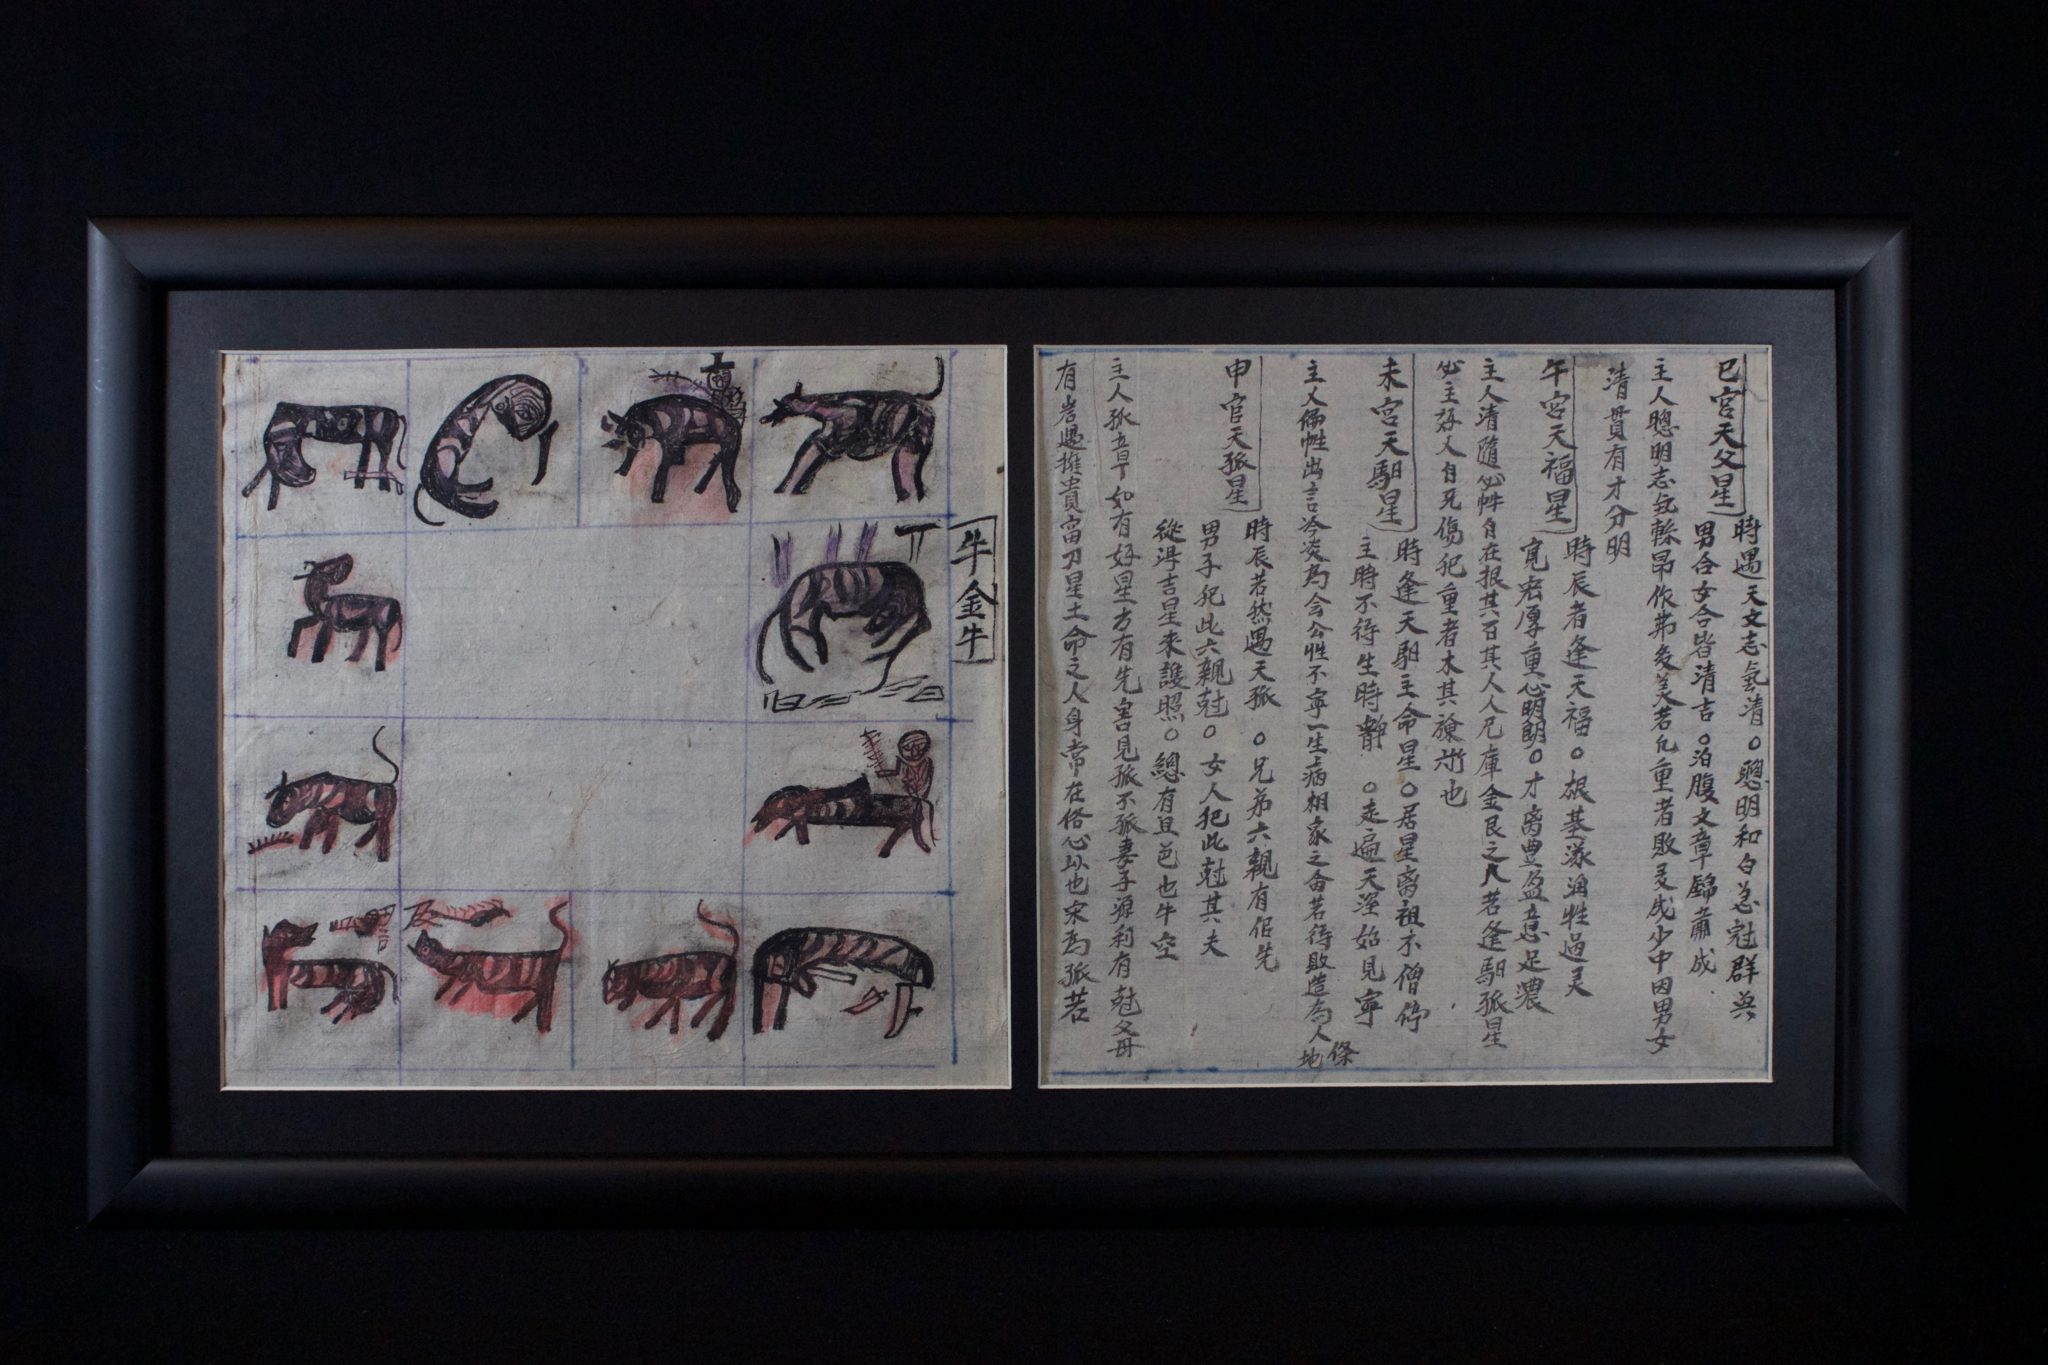 "Shaman's Personal Instruction Book, Cao Bang province, Vietnam Red Yao people, Early 20th c, Ink on handmade mulberry paper (tapa), Written in Nom (Chinese characters adapted to Vietnamese), books are an integral part of a shaman's repertoire. They range from explanations of various rituals and use of objects, to astrology, history, songs, laws, etiquette, children's tales, hunting practices, formulas, spells and Feng Shui. Shaman make their own books to help store their knowledge therefore no two are alike and a high level shaman will have a large library. 9 ½"" x 8 ½"" x ¾"", $850."